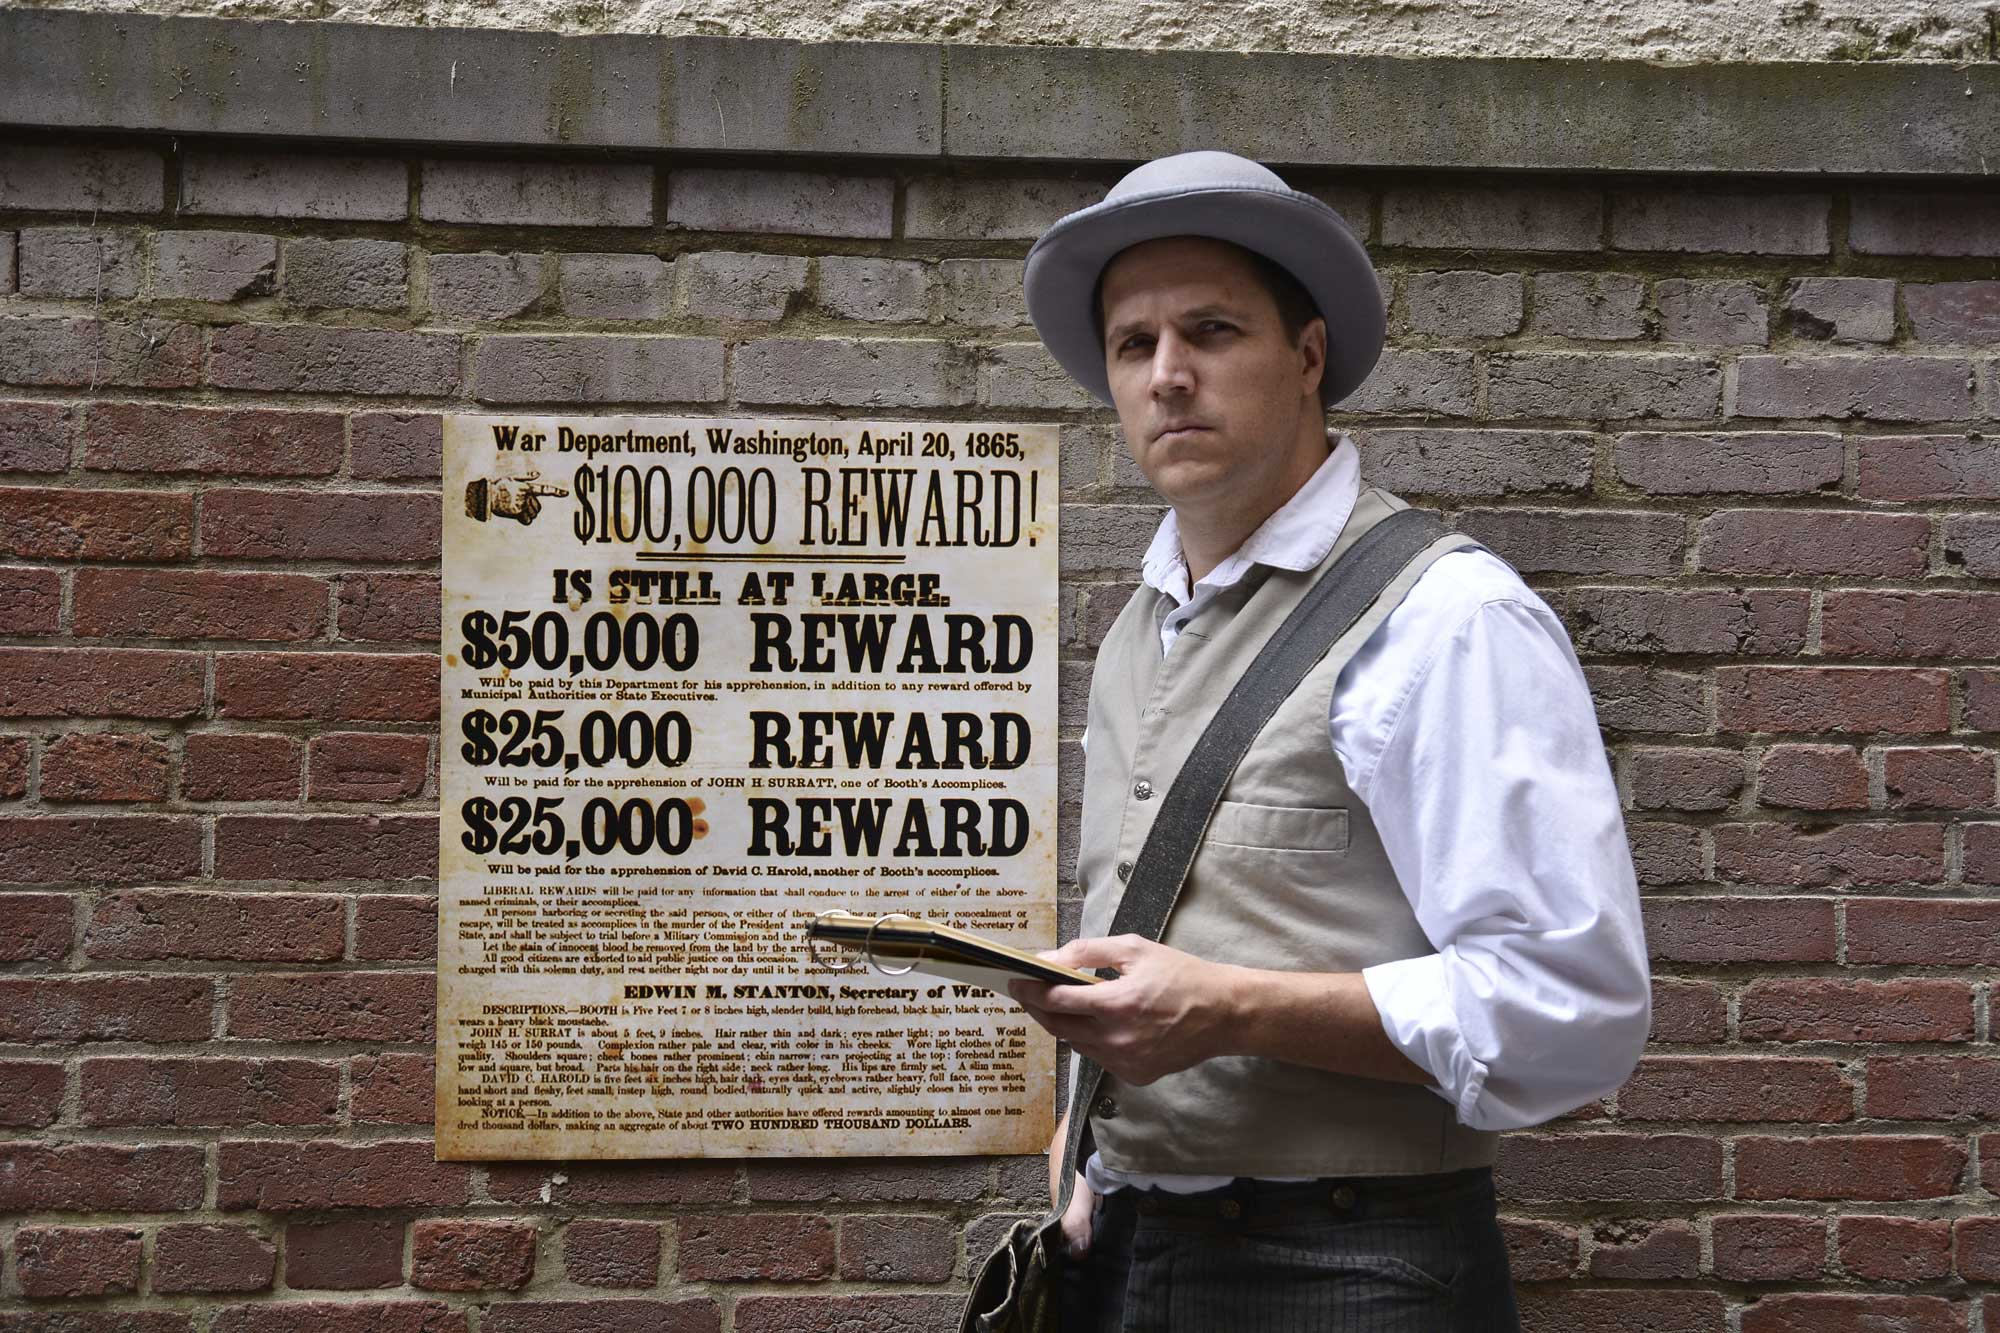 Actor Eric Messner, dressed as Detective McDevitt, stands in front of a brick wall where there is a posted wanted sign for assassin John Wilkes Booth.